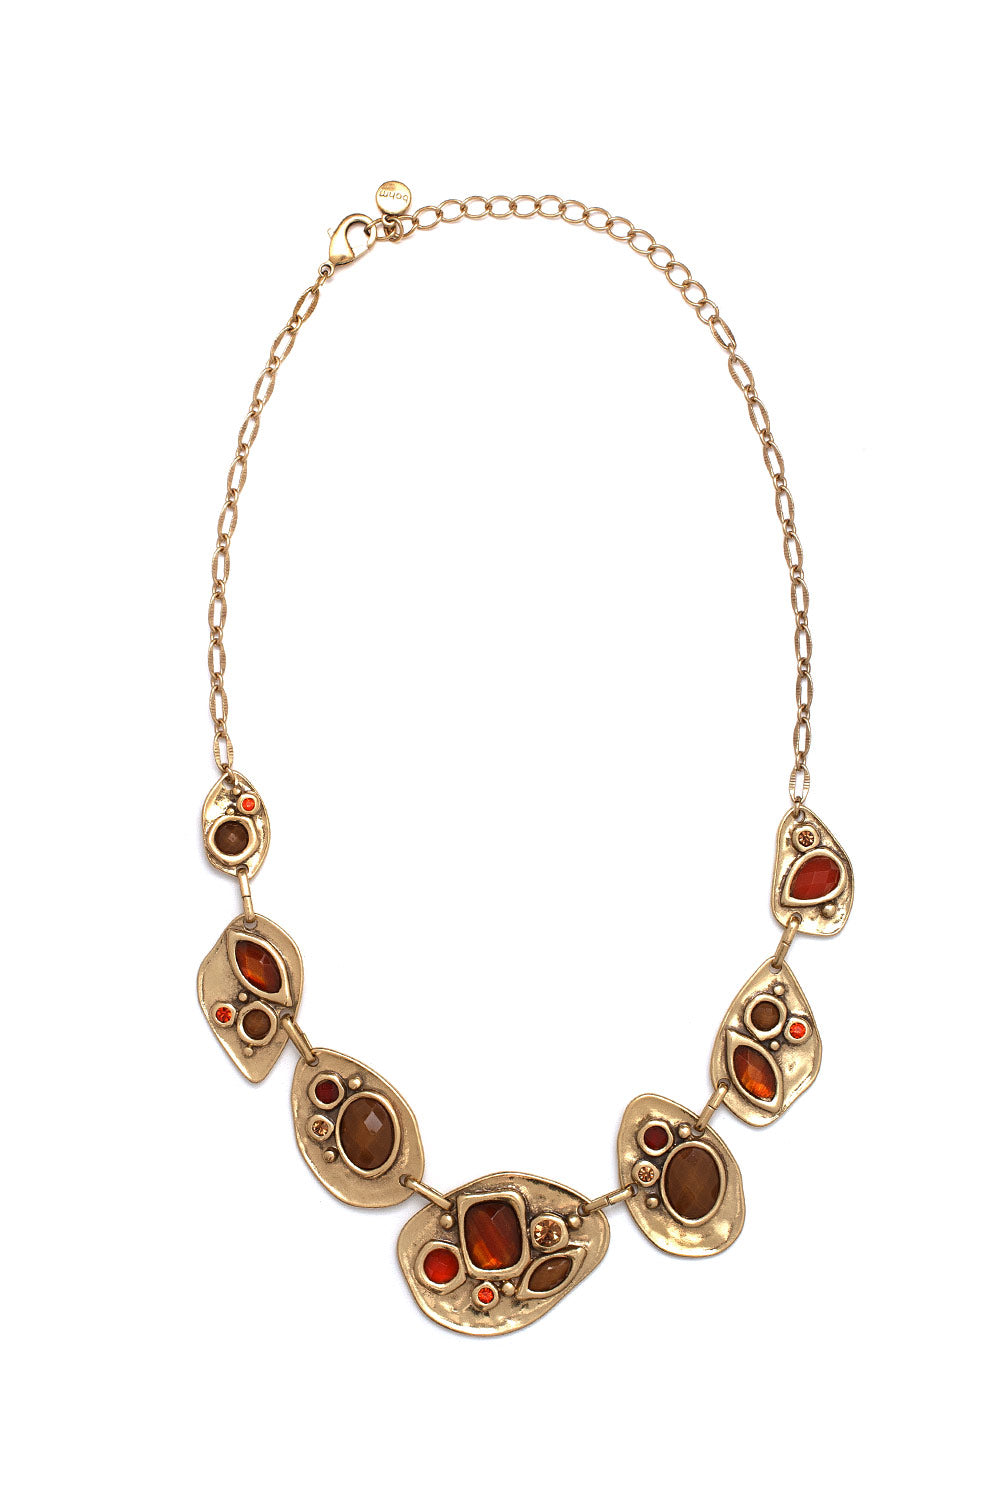 Type 3 Ornate Amber Necklace